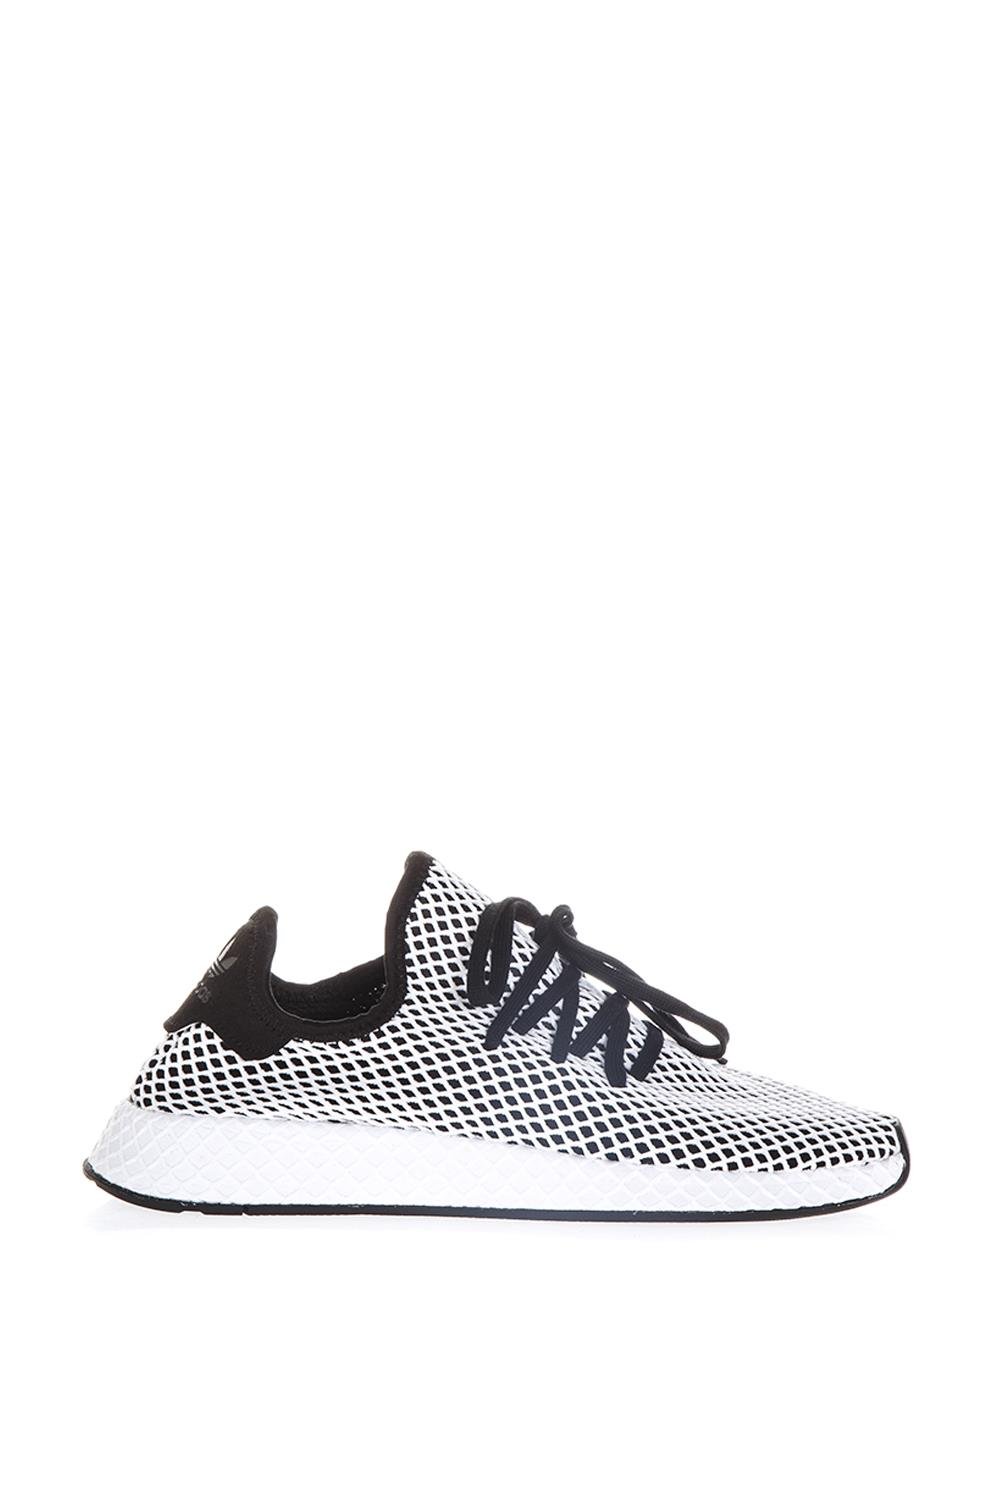 e86ae479ccce7 DEERUPT RUNNER CORE SNEAKERS SS 2018 - ADIDAS ORIGINALS - Boutique Galiano